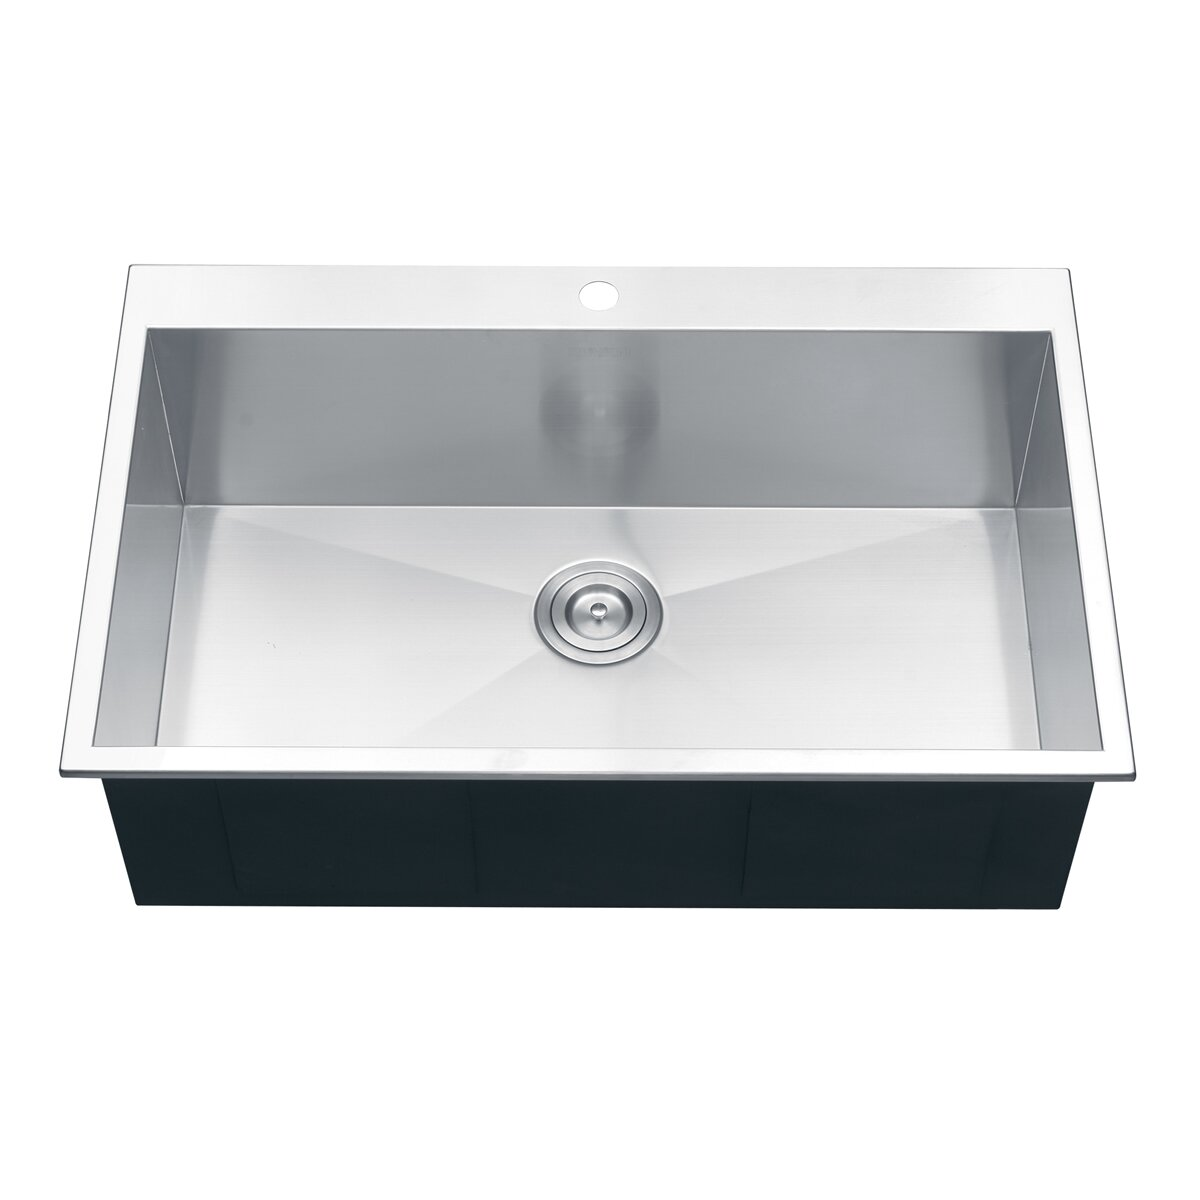 single bowl kitchen sink drop in ruvati tirana 33 quot x 21 quot drop in single bowl kitchen sink 9304